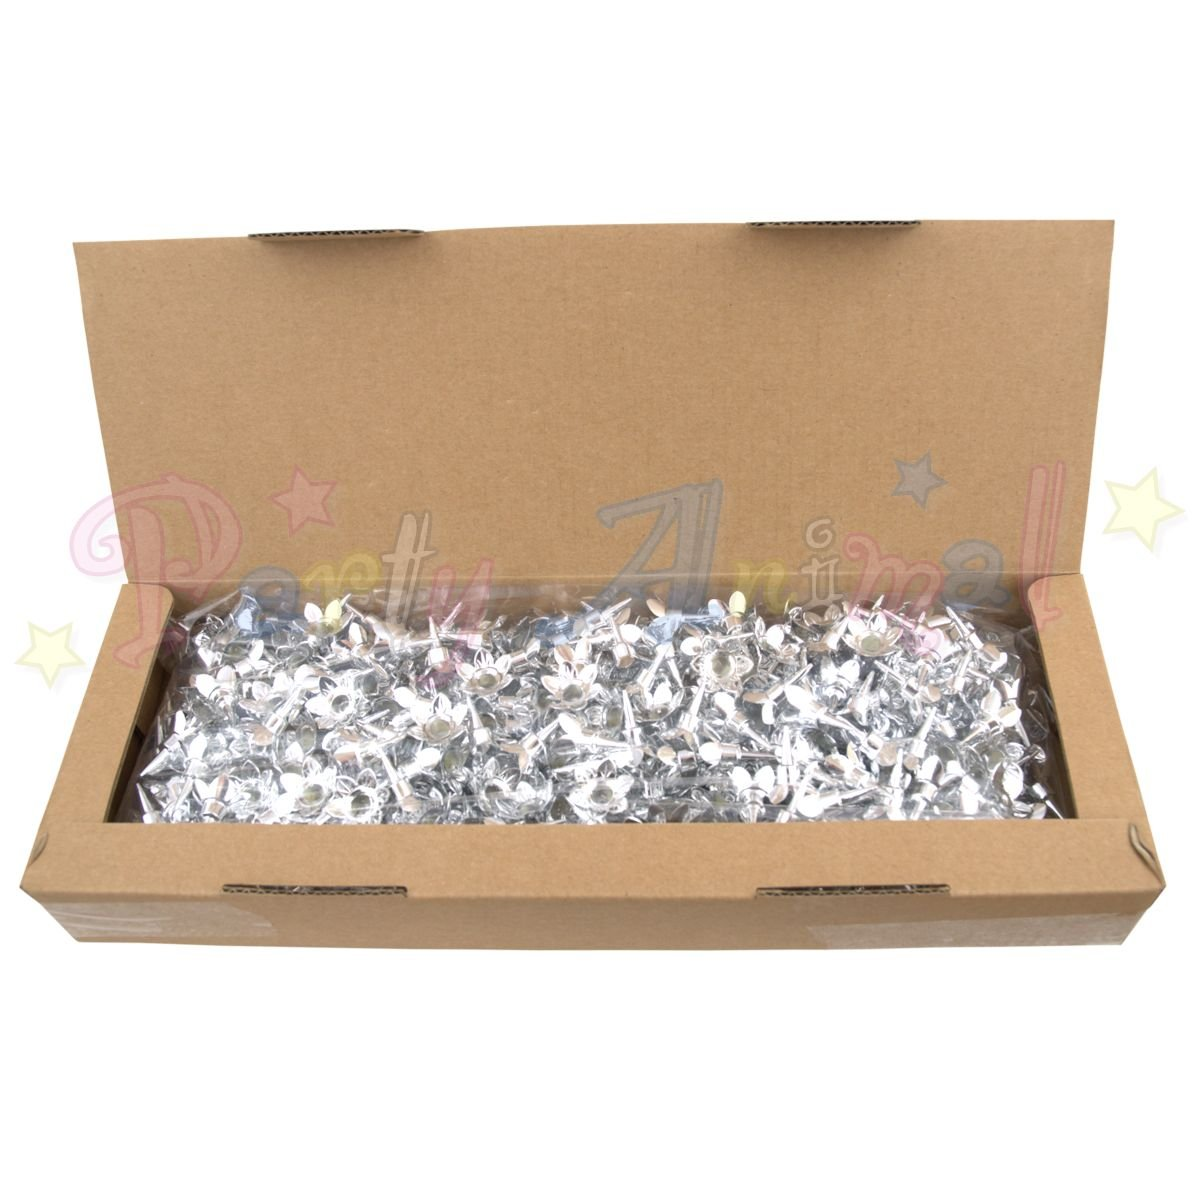 Bulk Pack of Plain Birthday Candles or Holders - Packs of 500 - Cake decoration accessories (Silver Candle Holders)